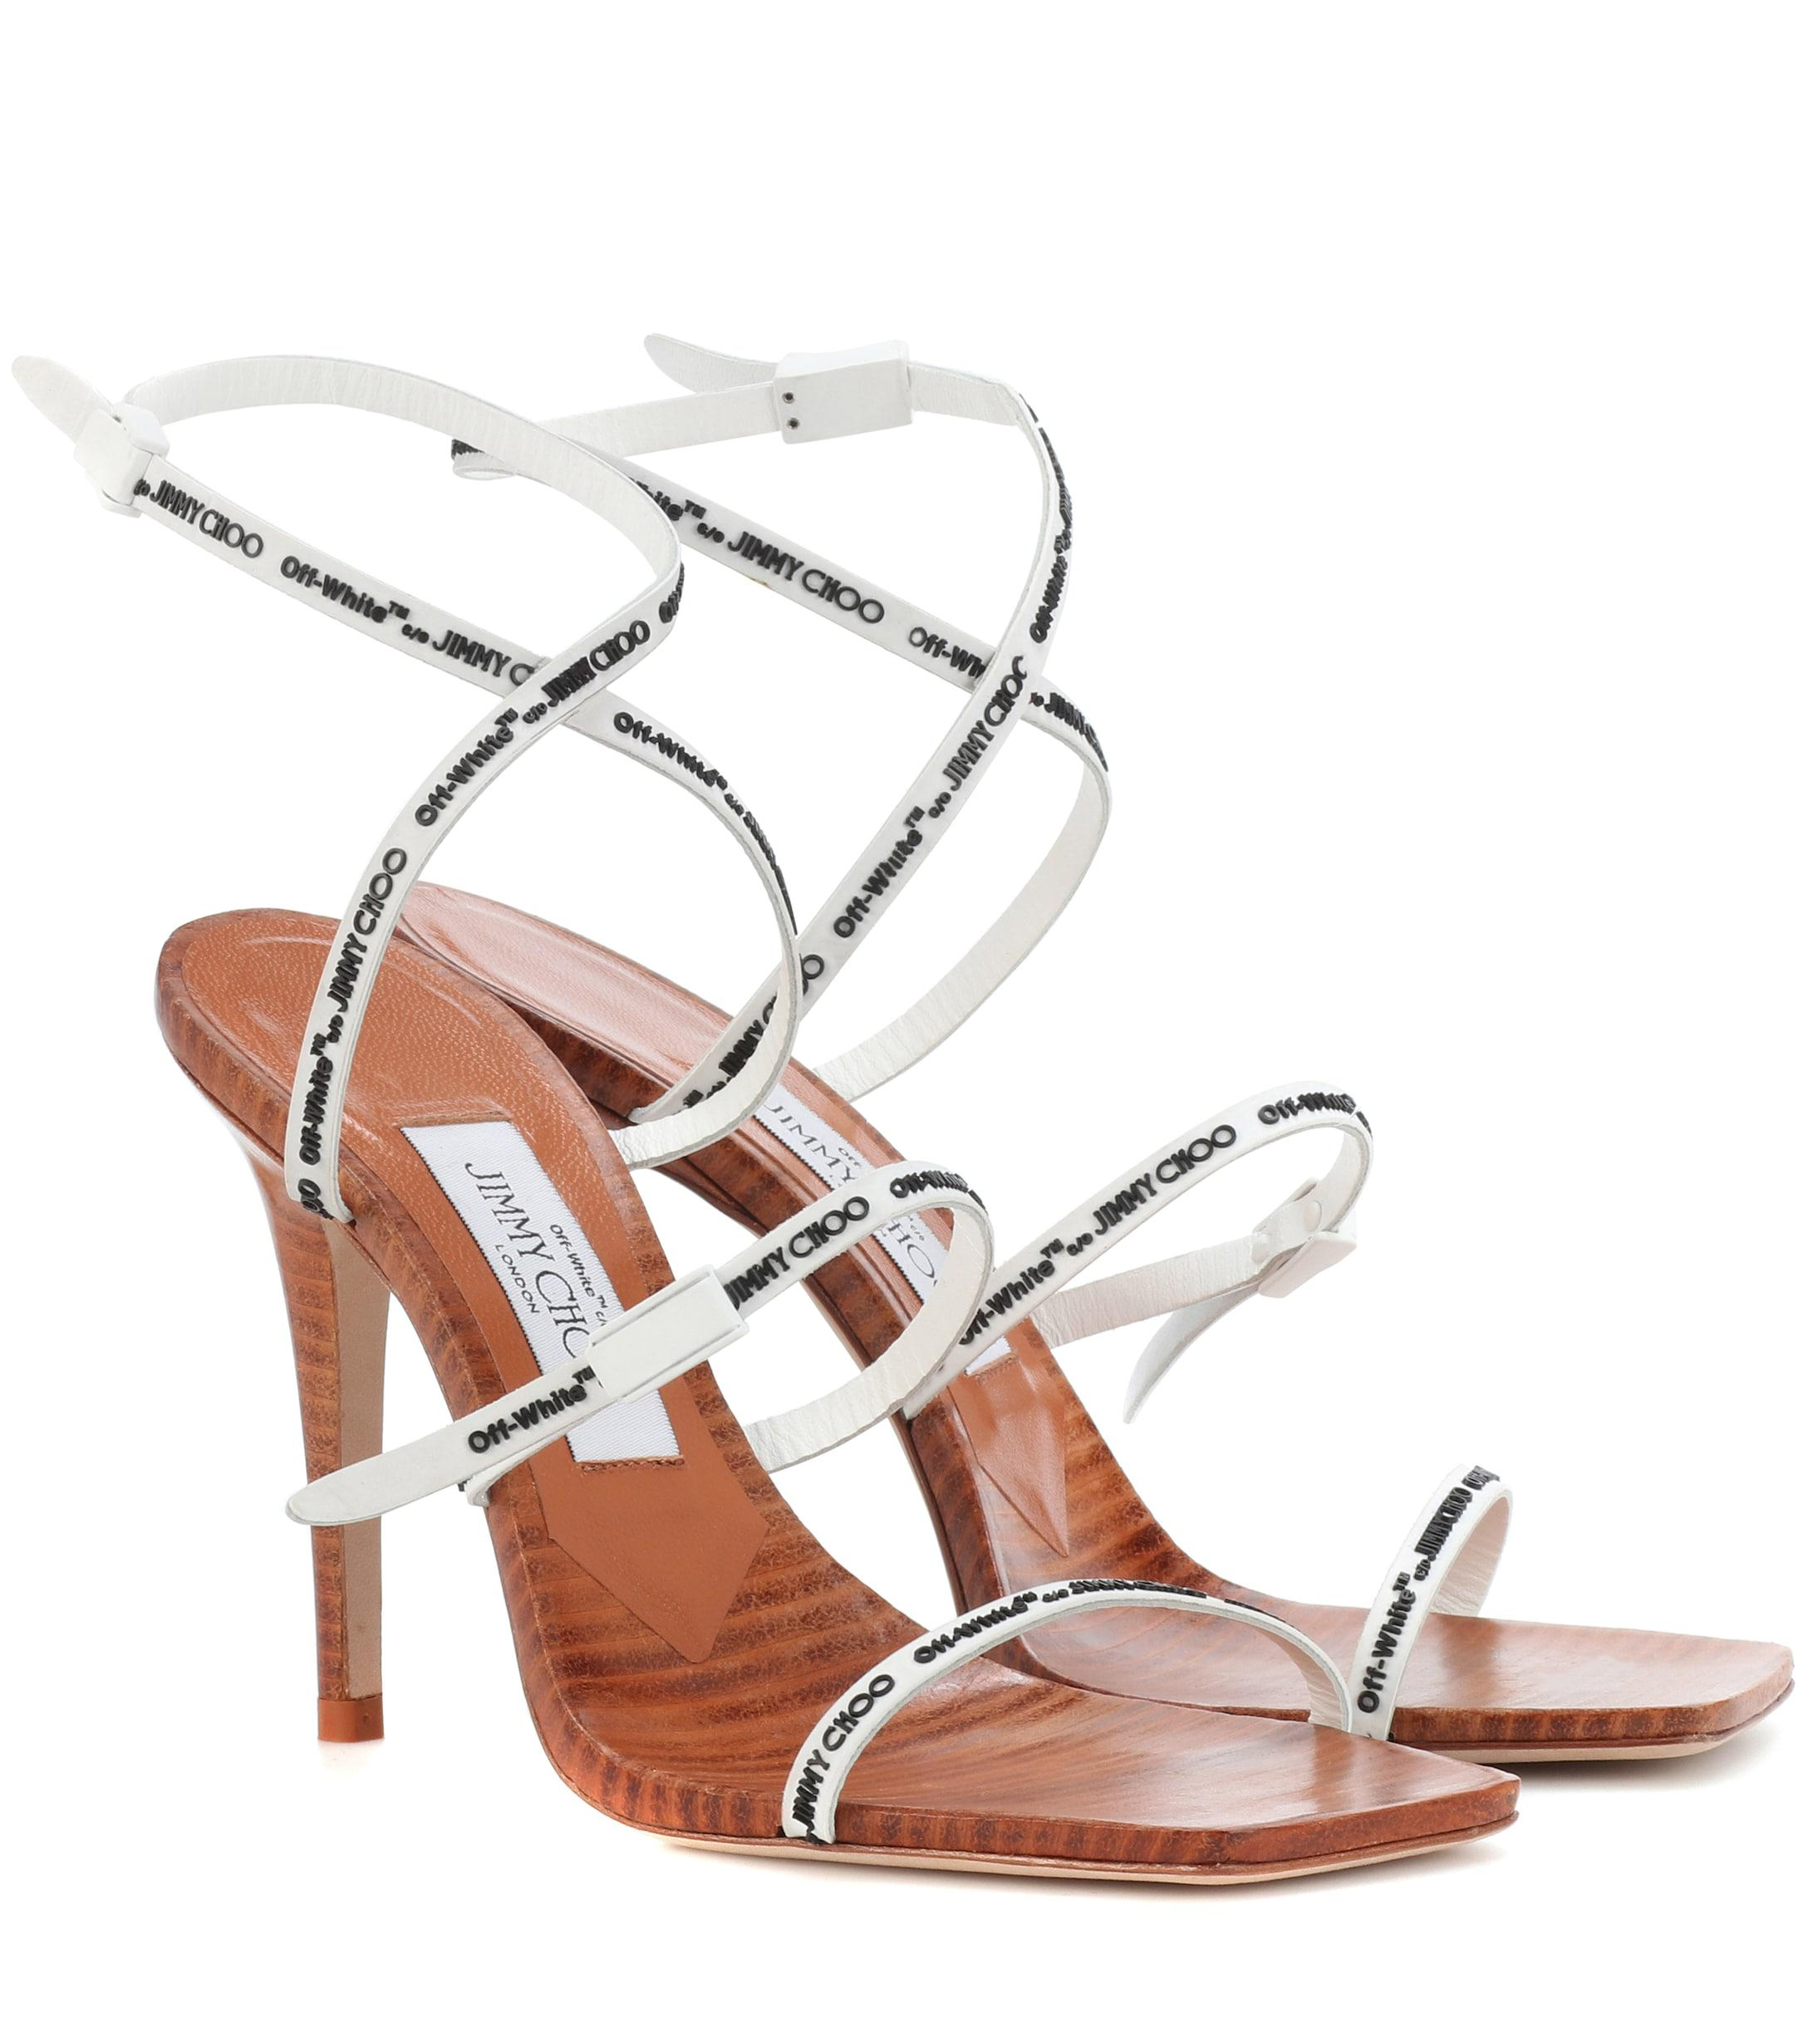 a6901f447634 Jimmy Choo - X Off-white Jane 100 Sandals - Lyst. View fullscreen